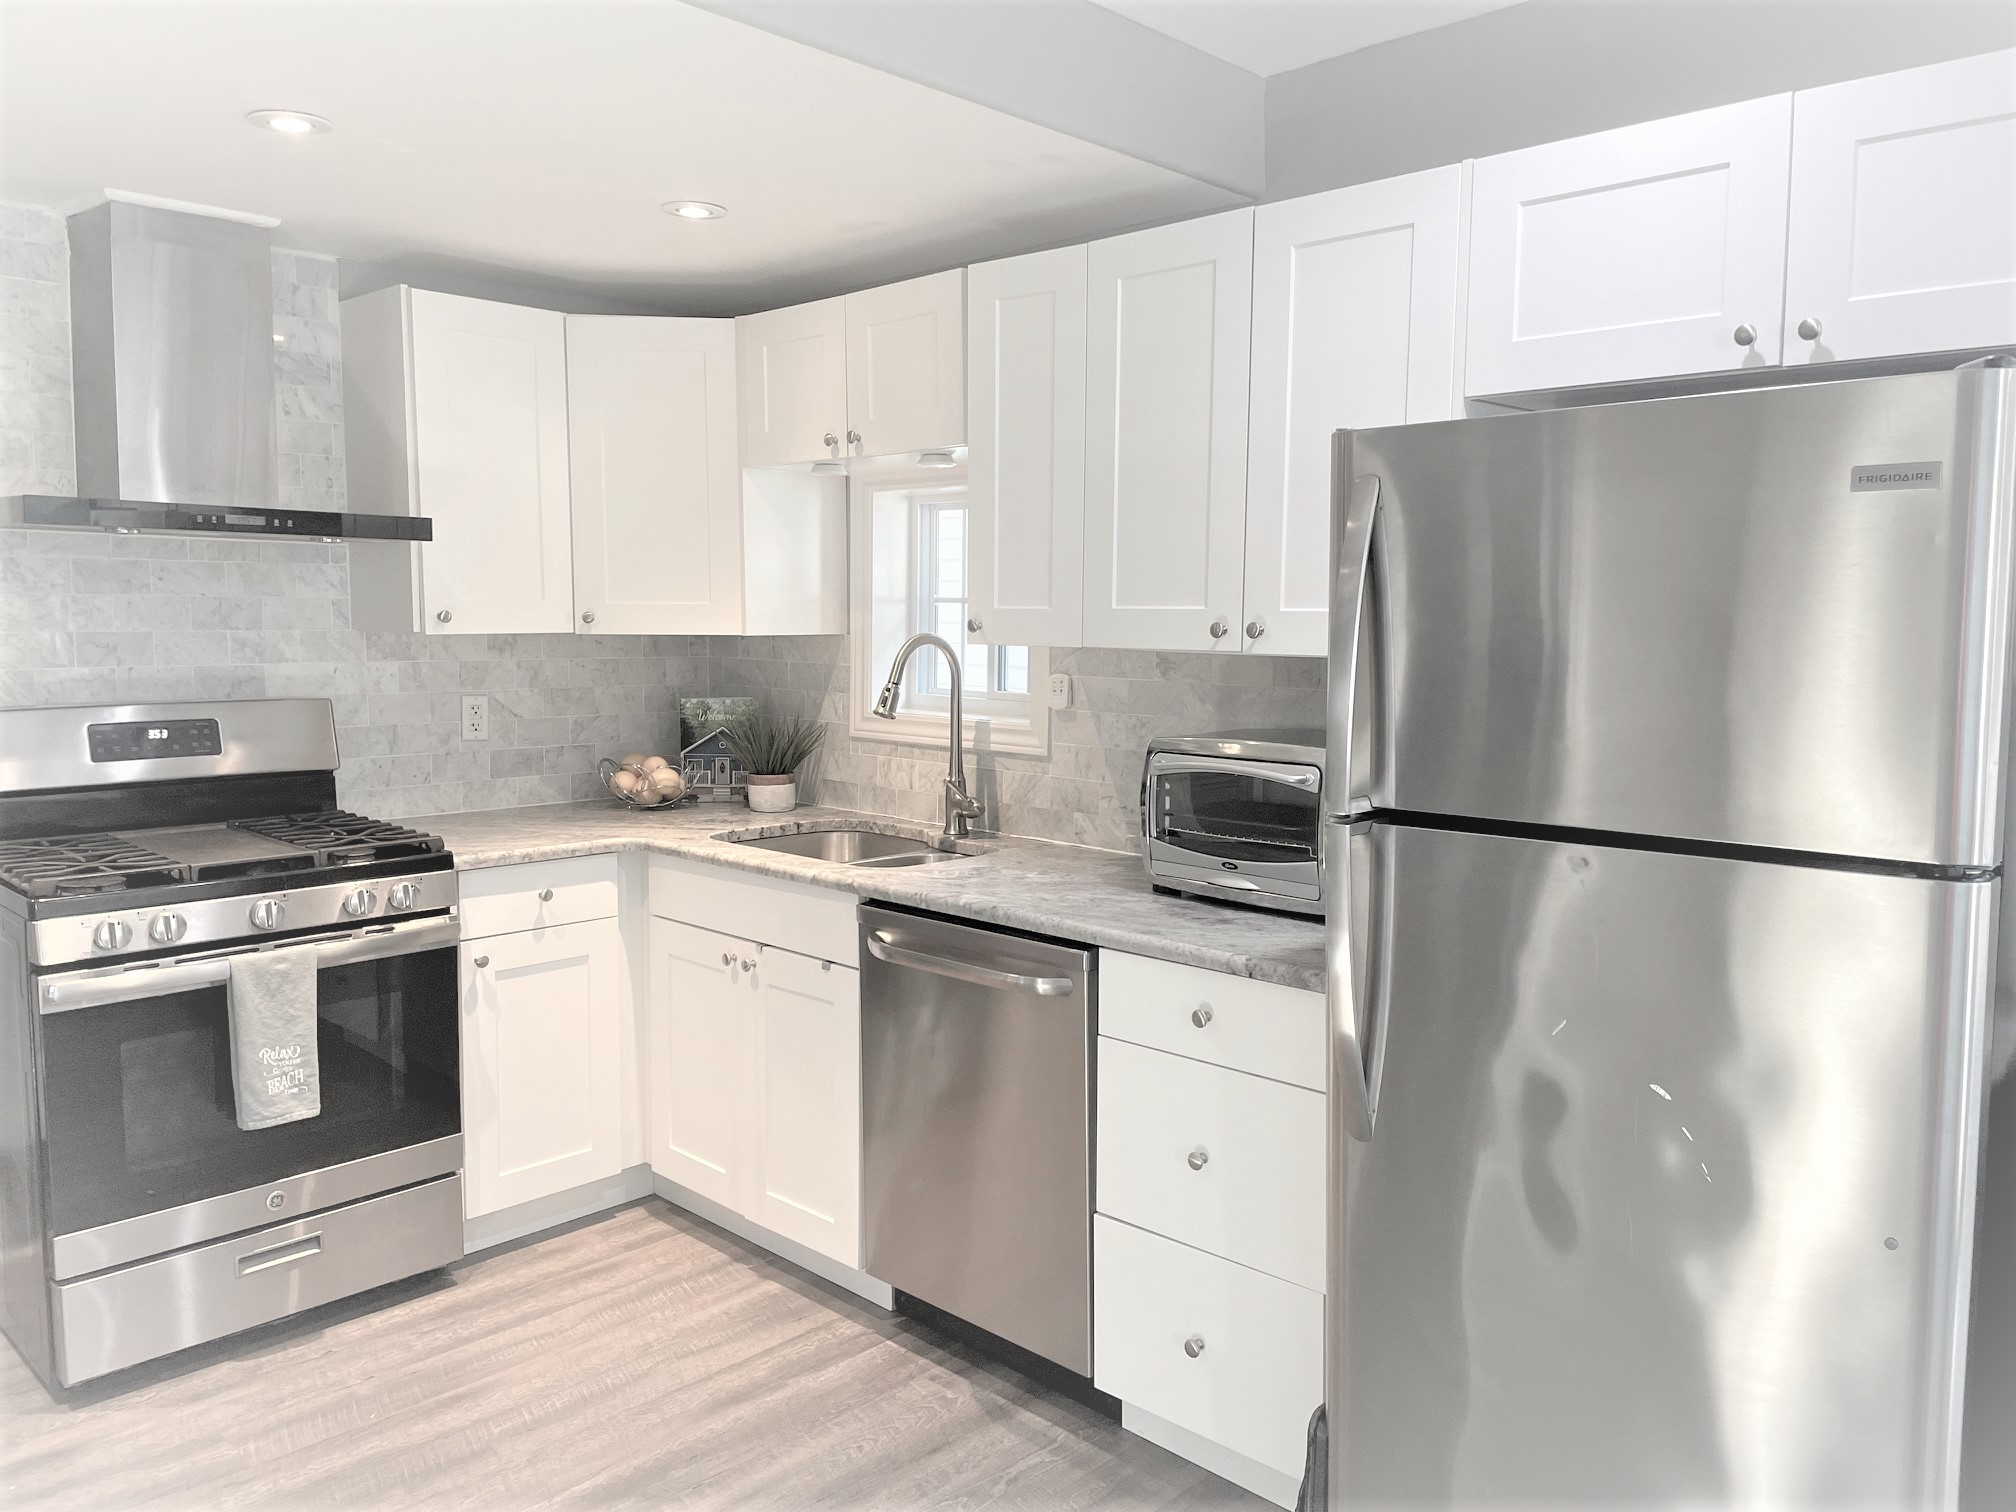 Home Away From Home-Kitchen3-Holiday Homes Property Management-Crystal Beach ON